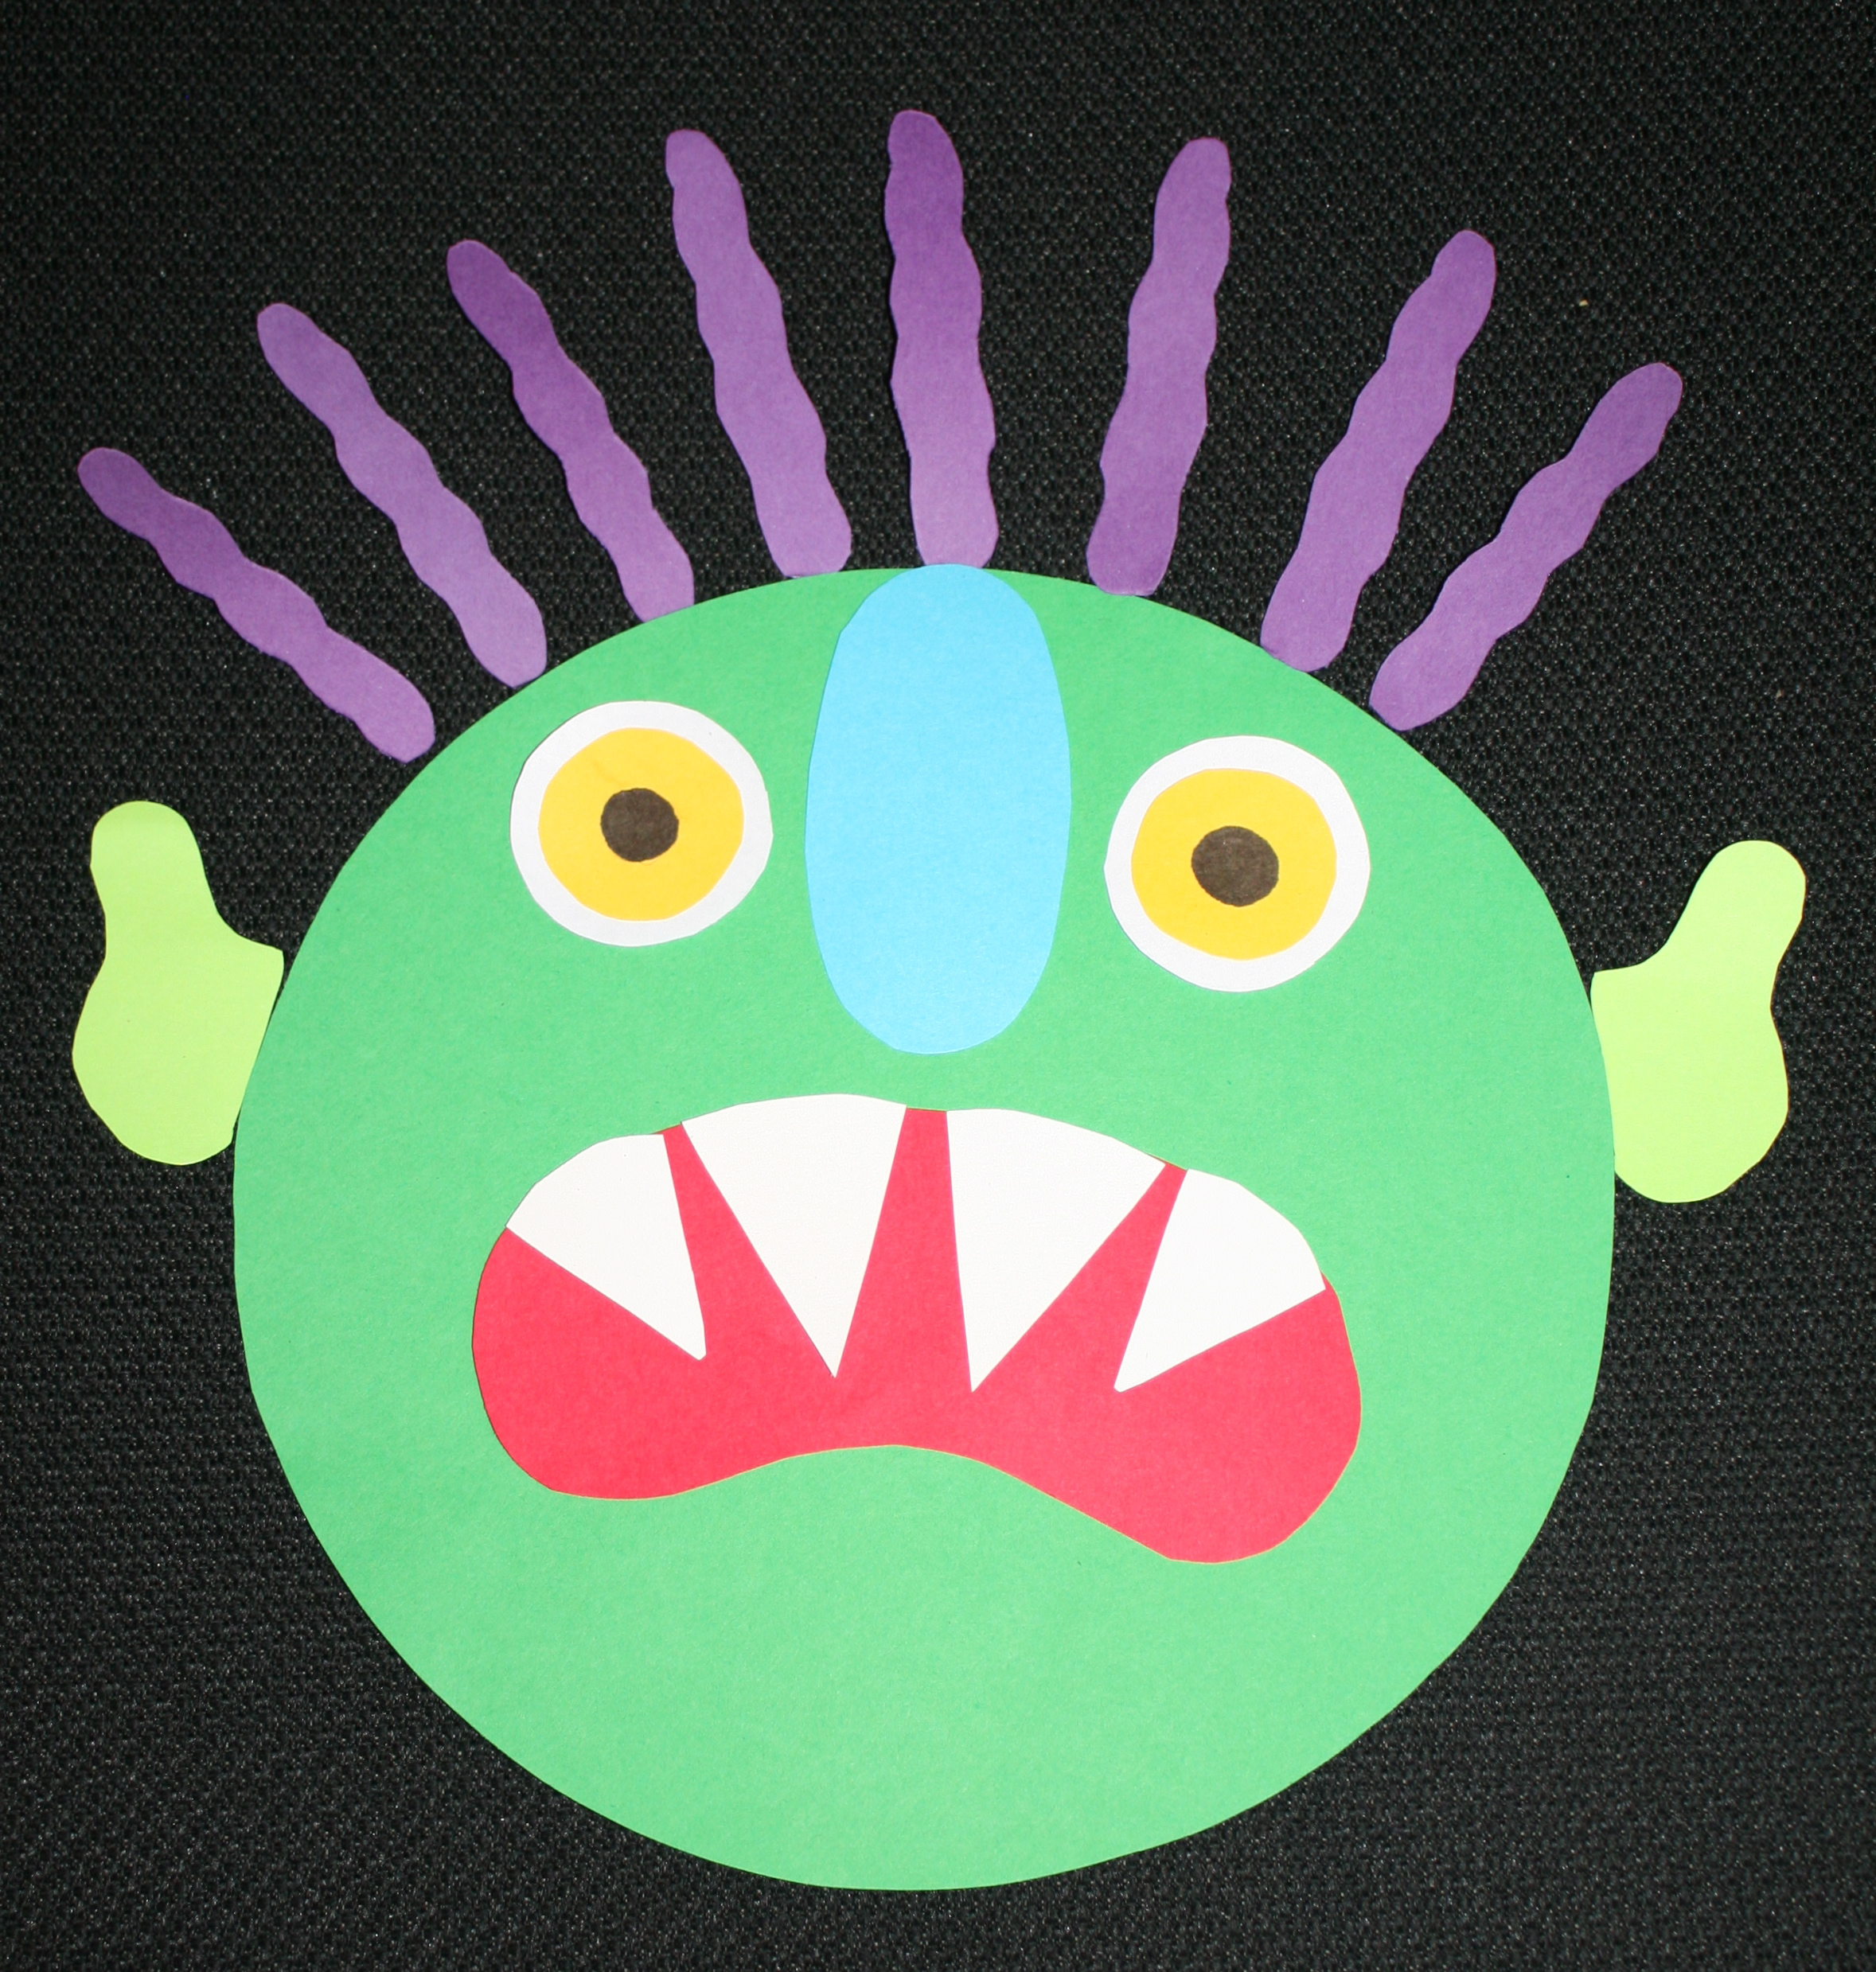 go away big green monster activities, glad monster sad monster activities, october books, october bulletin board ideas, Halloween bulletin boards, bulleting board ideas for october, monster ideas